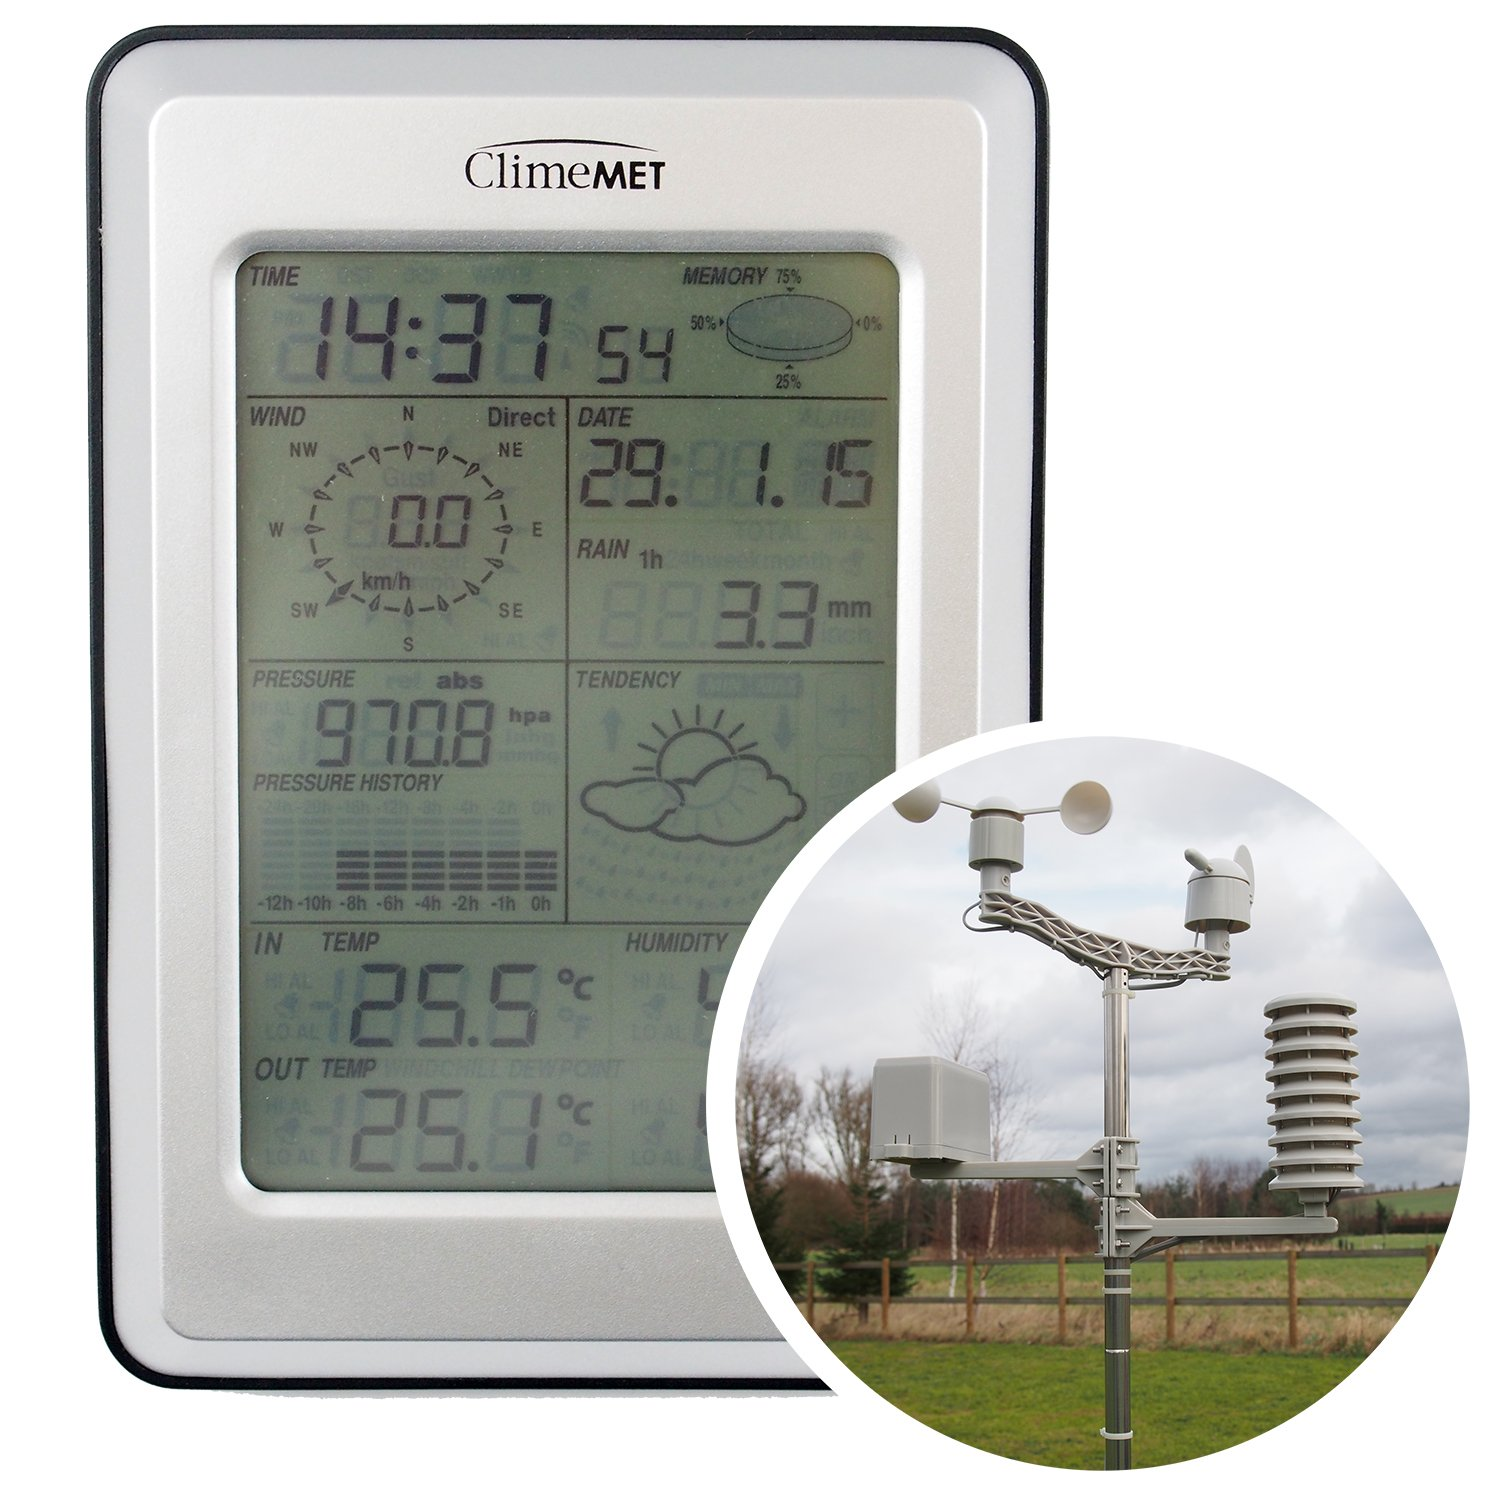 ClimeMET CM2000 Professional Wireless Weather Station Includes FREE EasyWeather Computer Software.